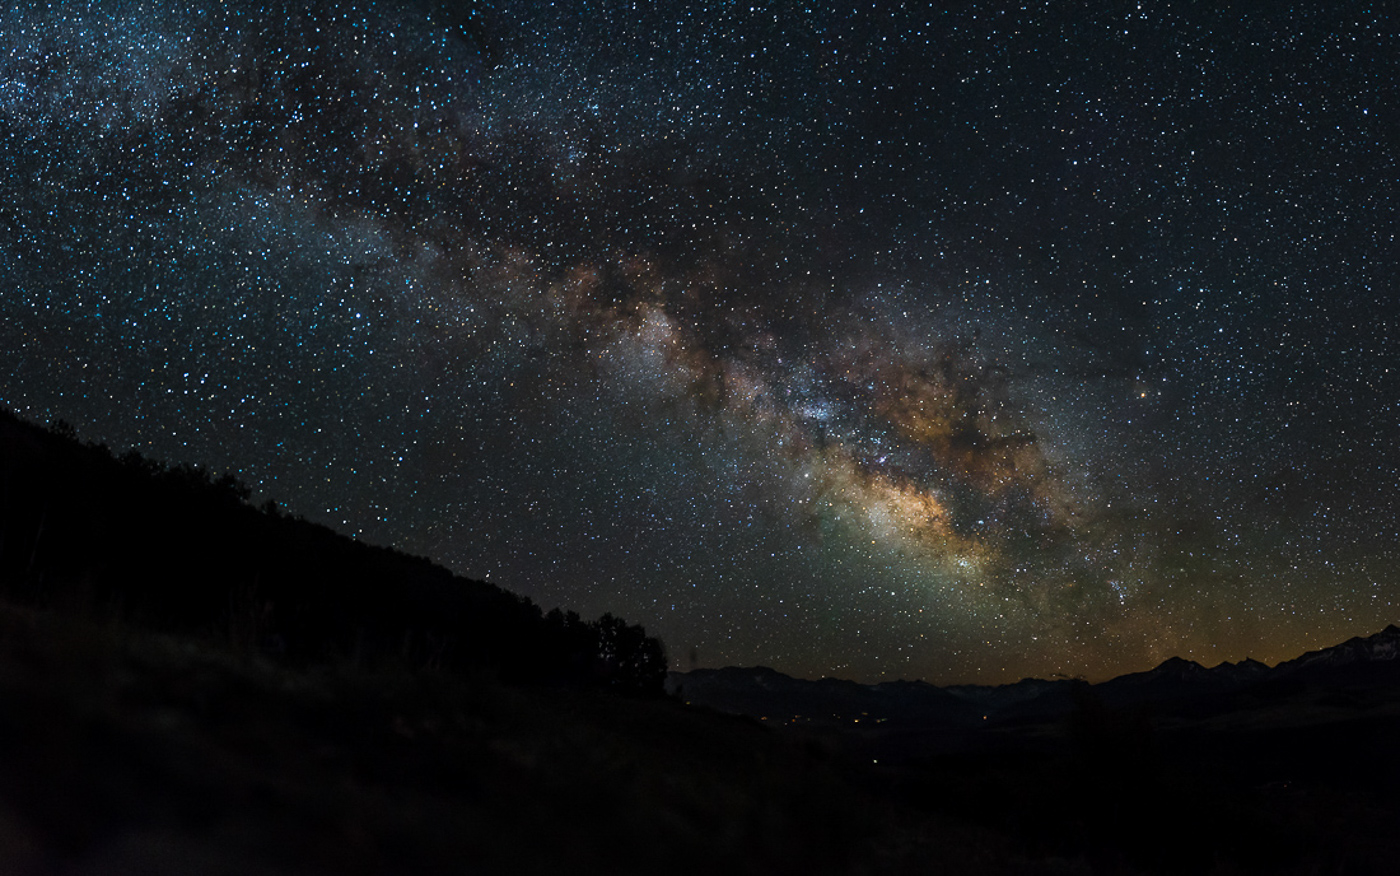 The Milky Way over Telluride, Colorado.